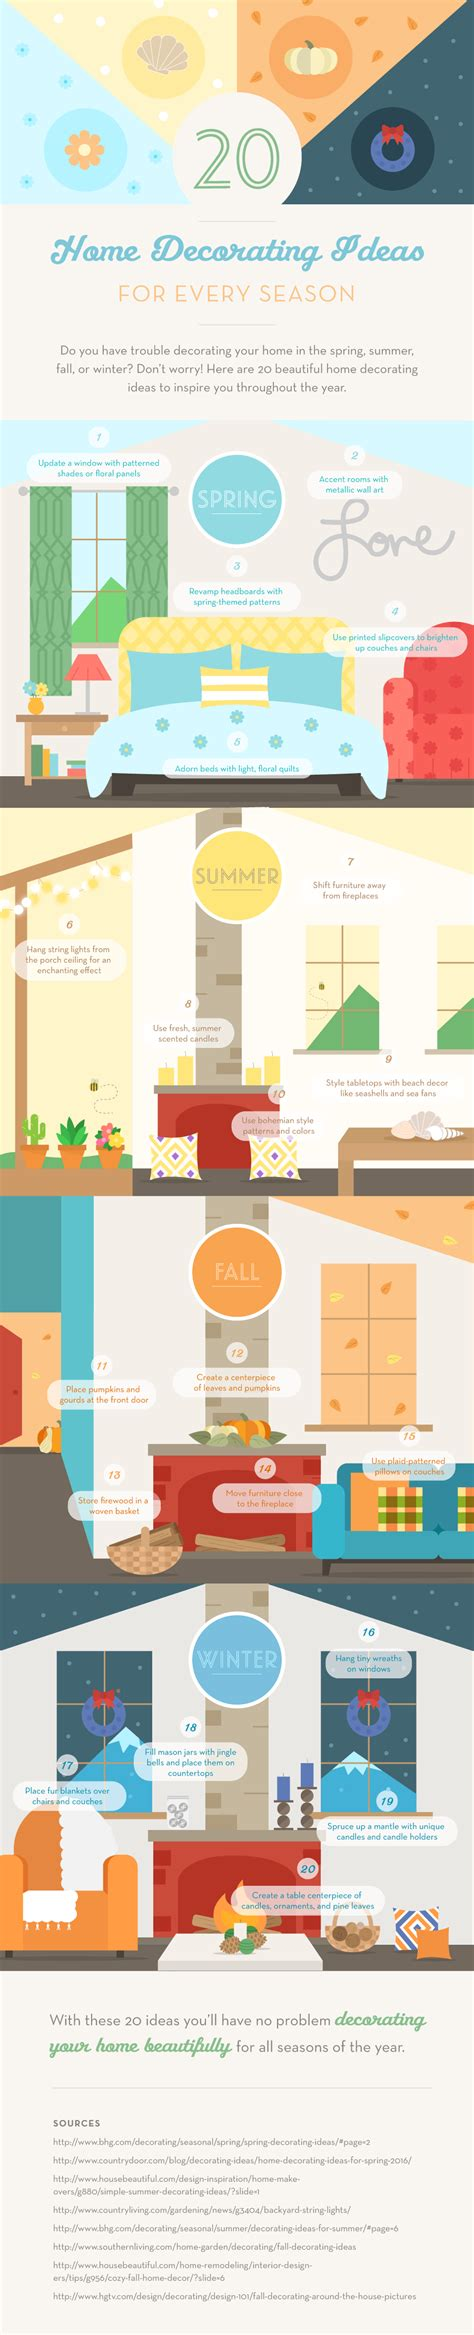 home decor infographic home decor ideas infographic house in the valley